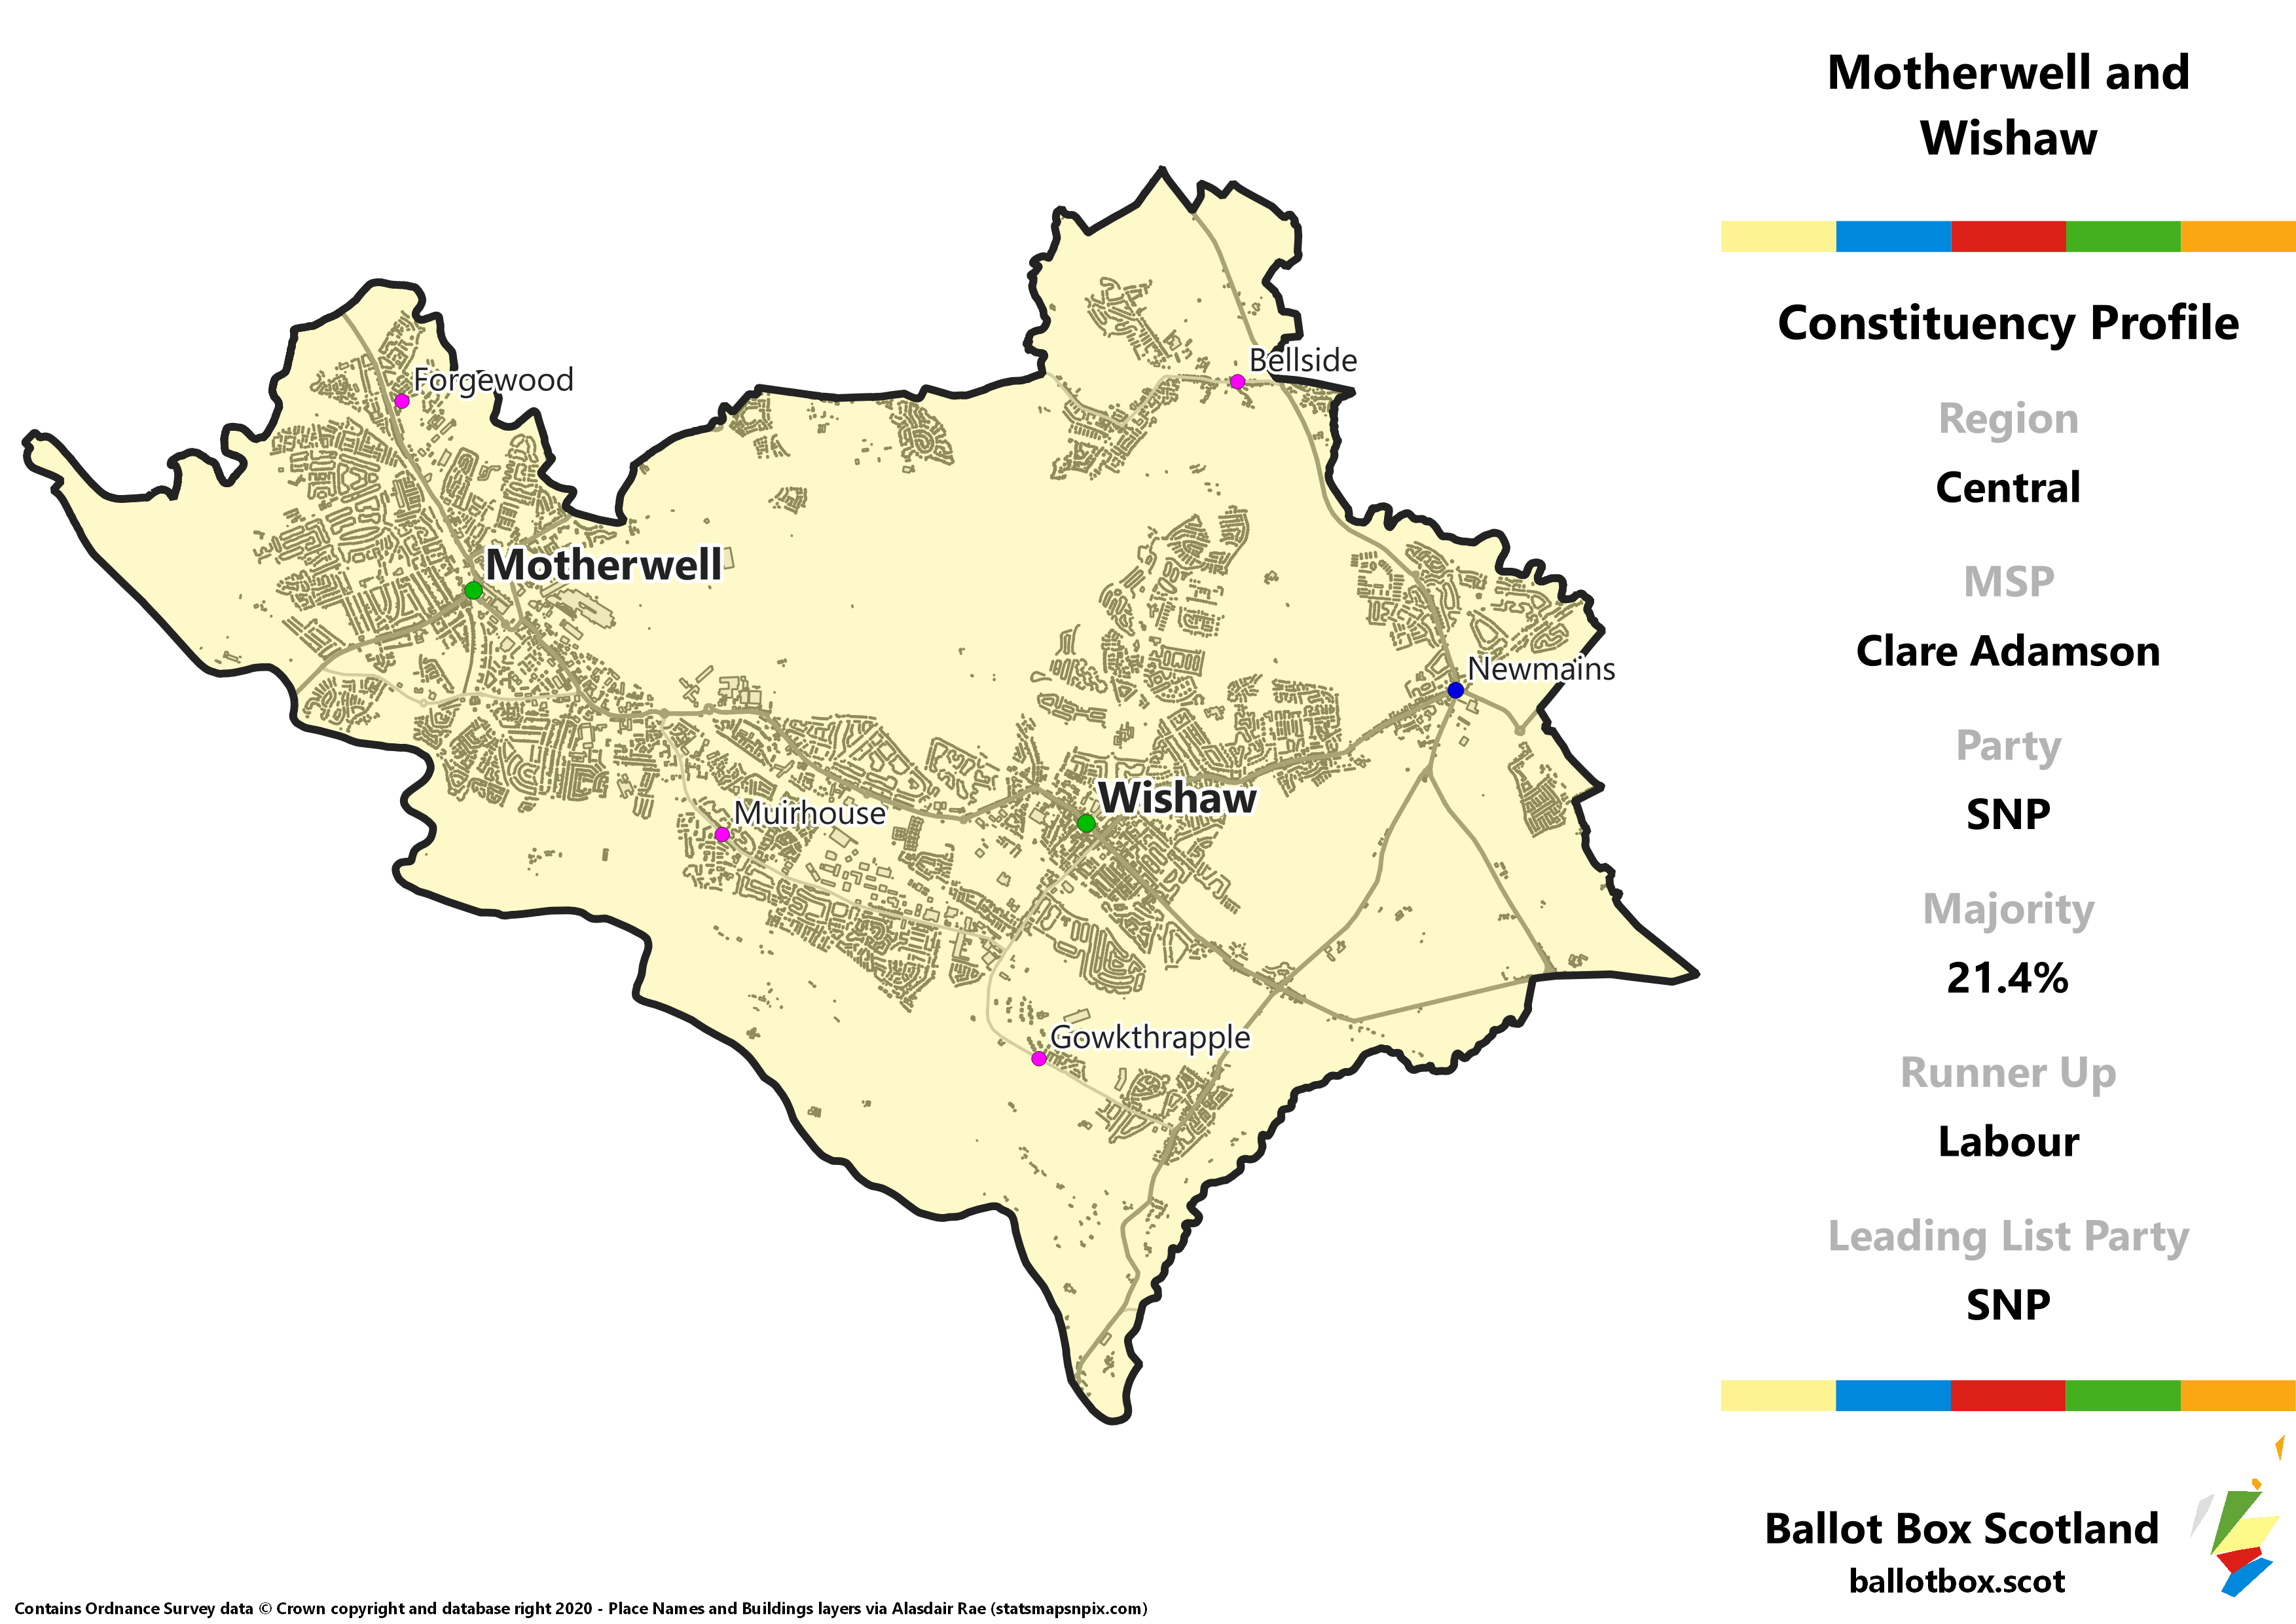 Central Region – Motherwell and Wishaw Constituency Map